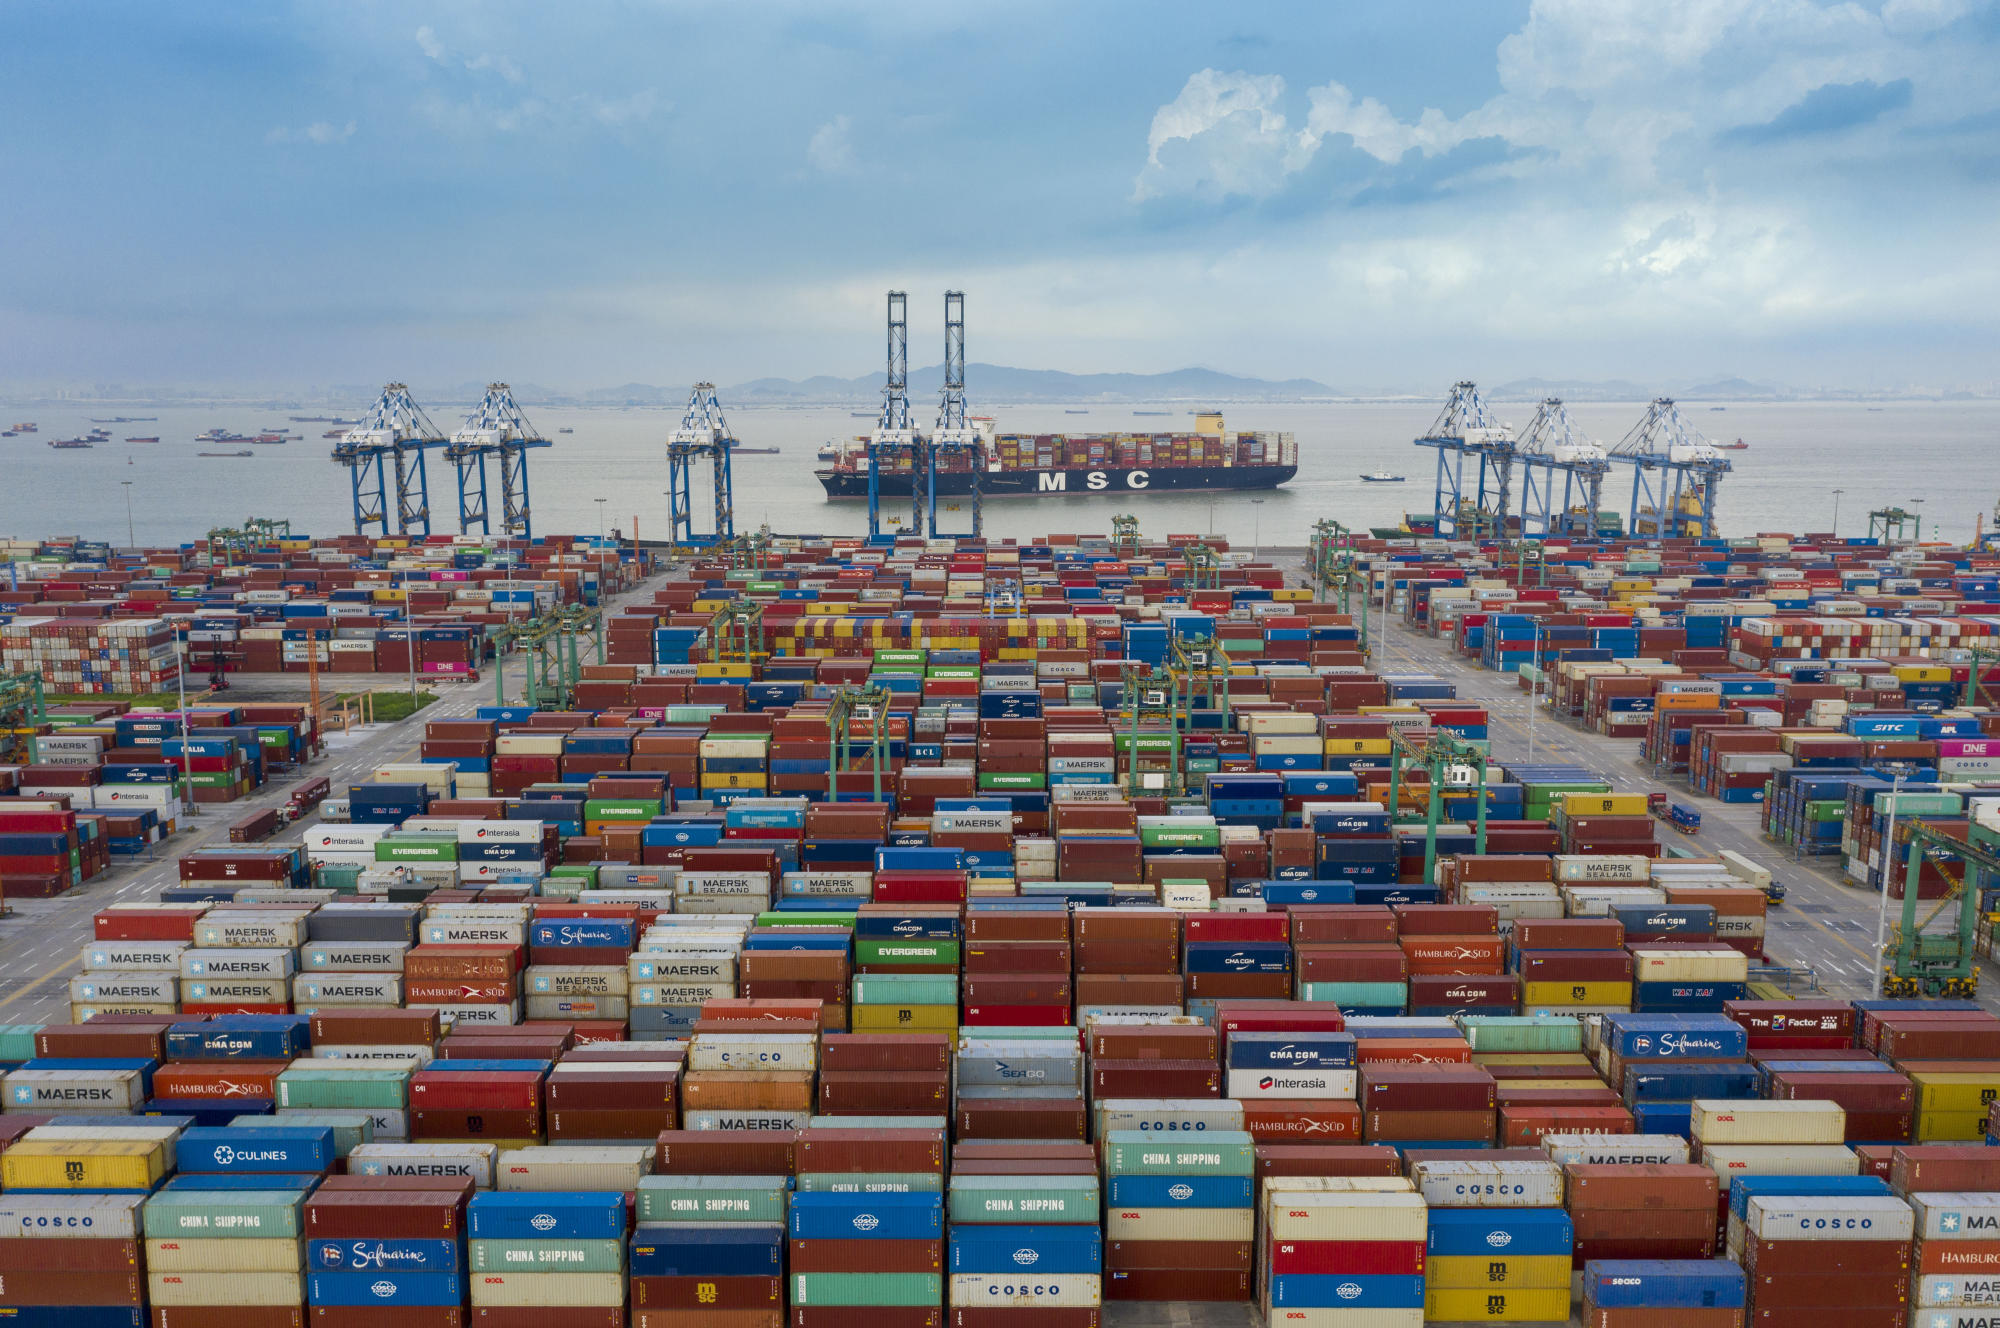 Shipping industry logjam could hold up Christmas orders